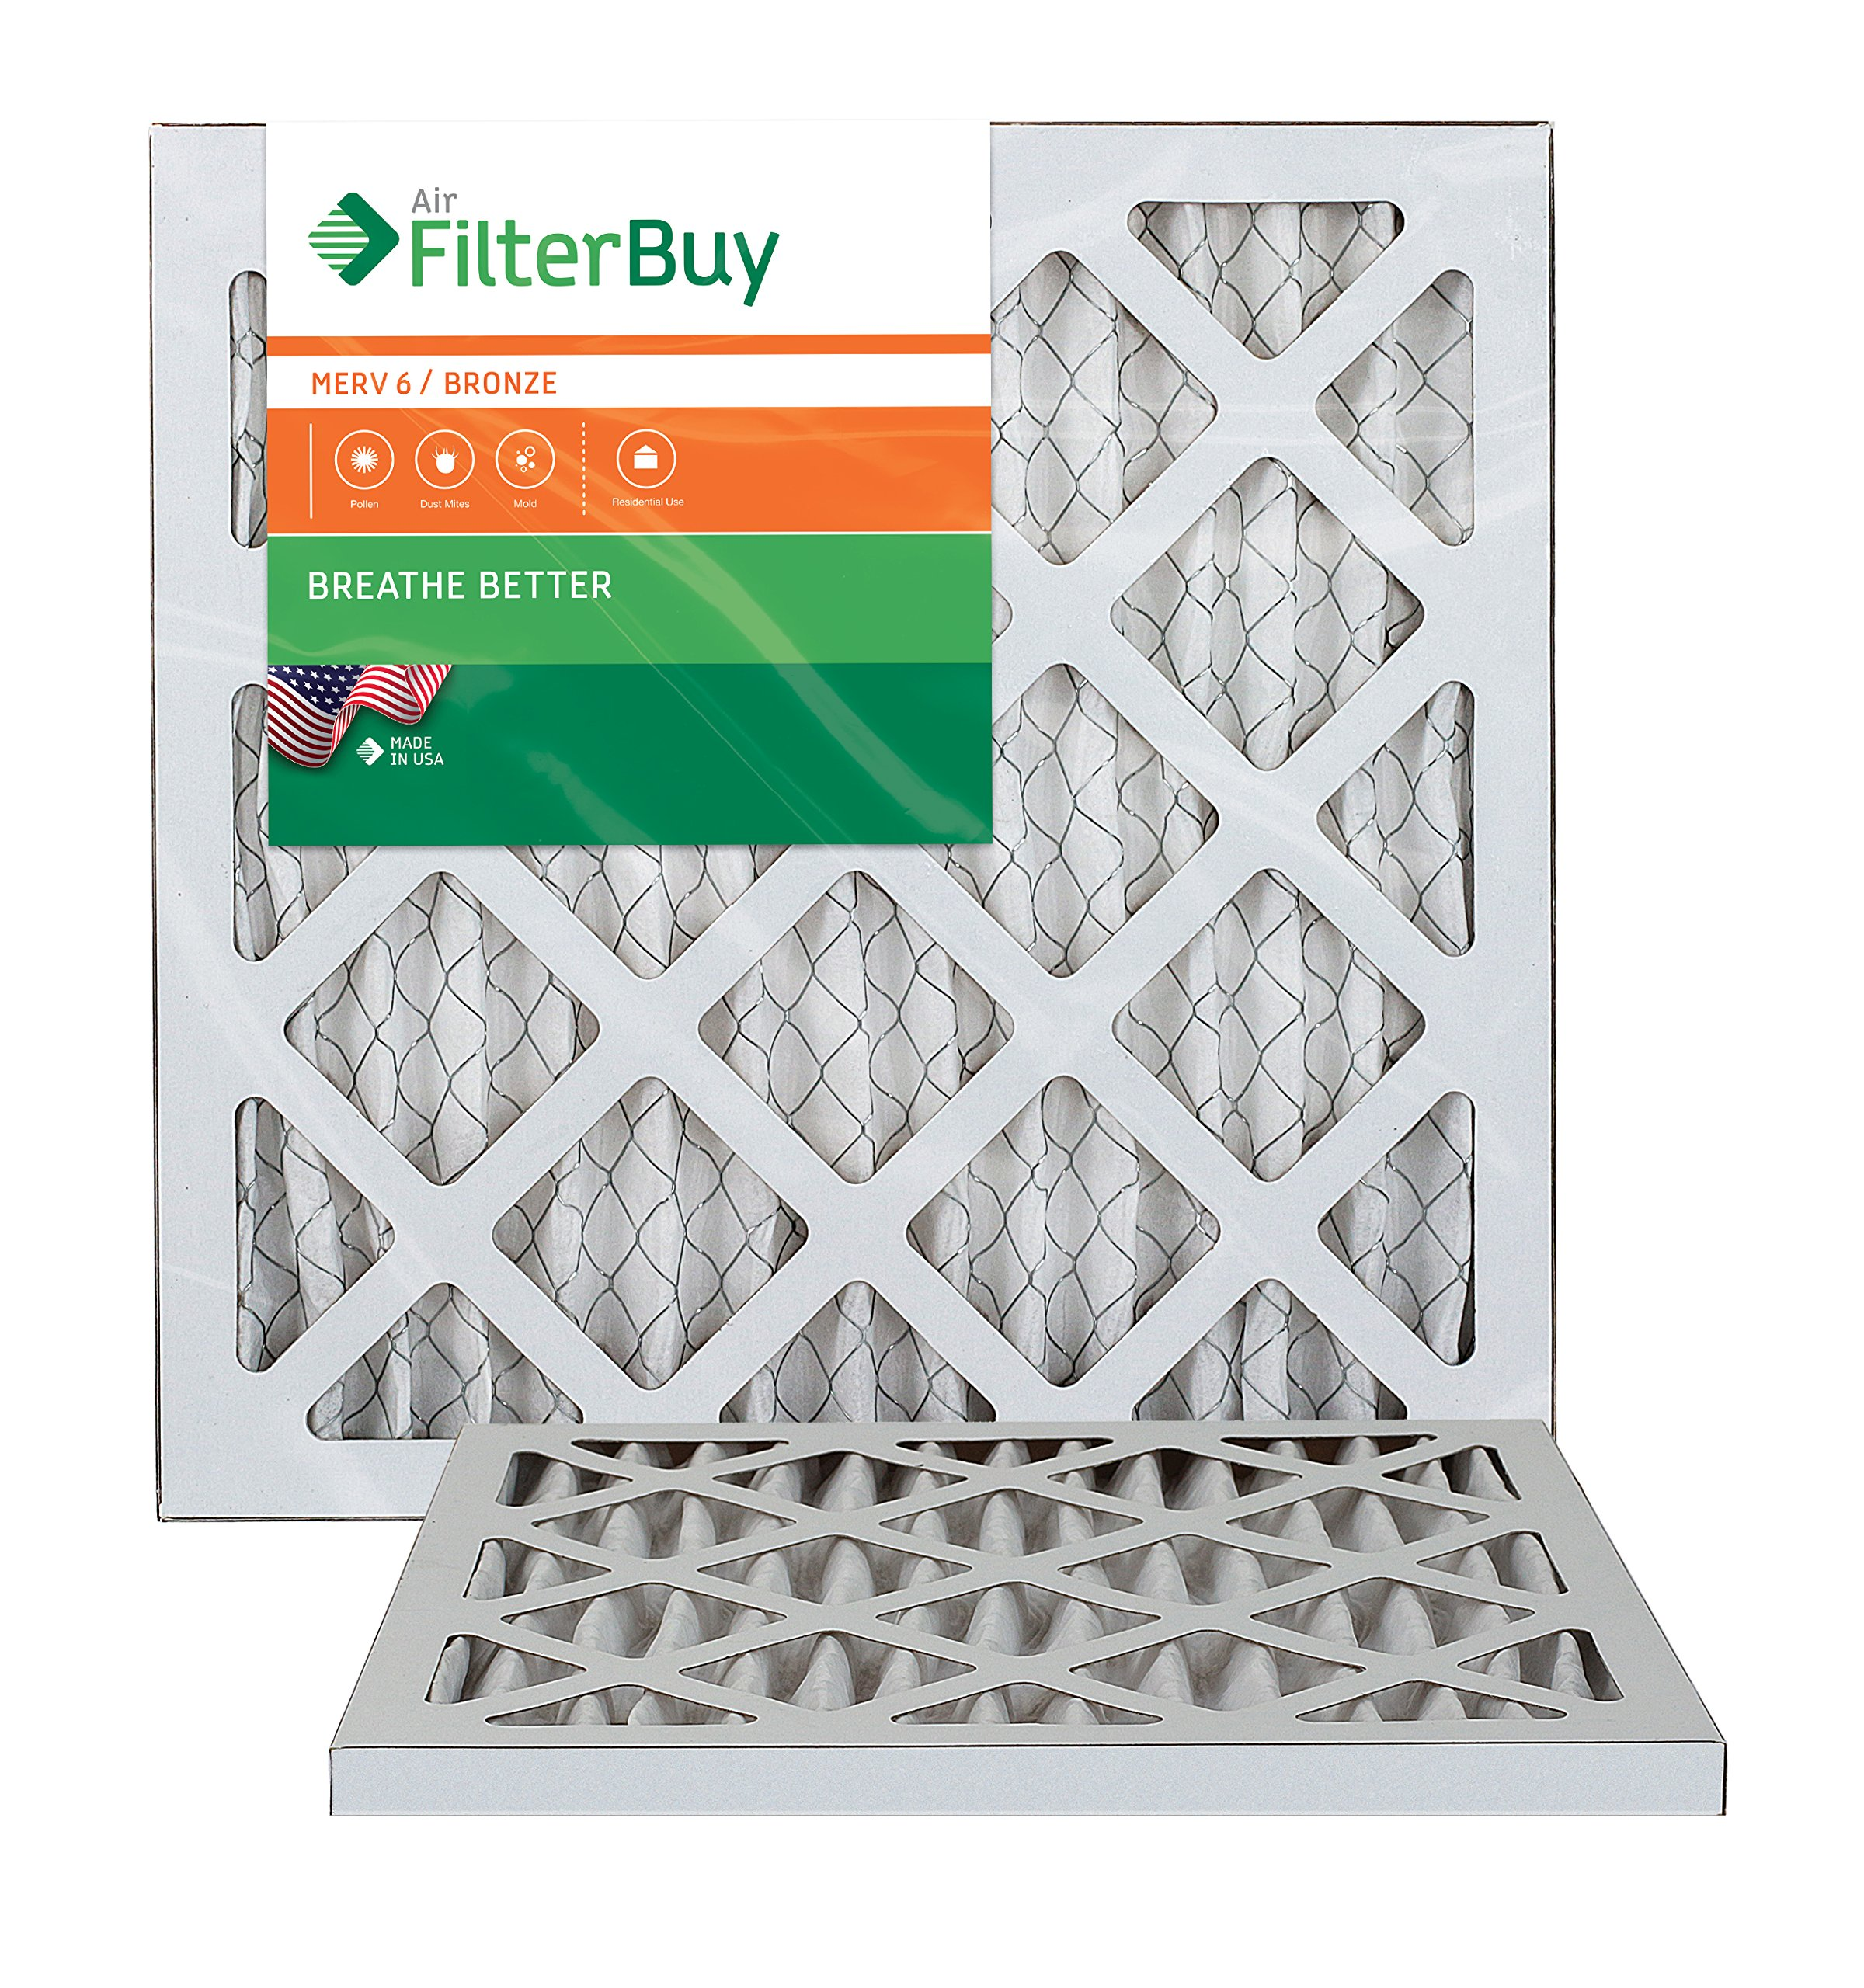 AFB Bronze MERV 6 10x18x1 Pleated AC Furnace Air Filter. Pack of 2 Filters. 100% produced in the USA.